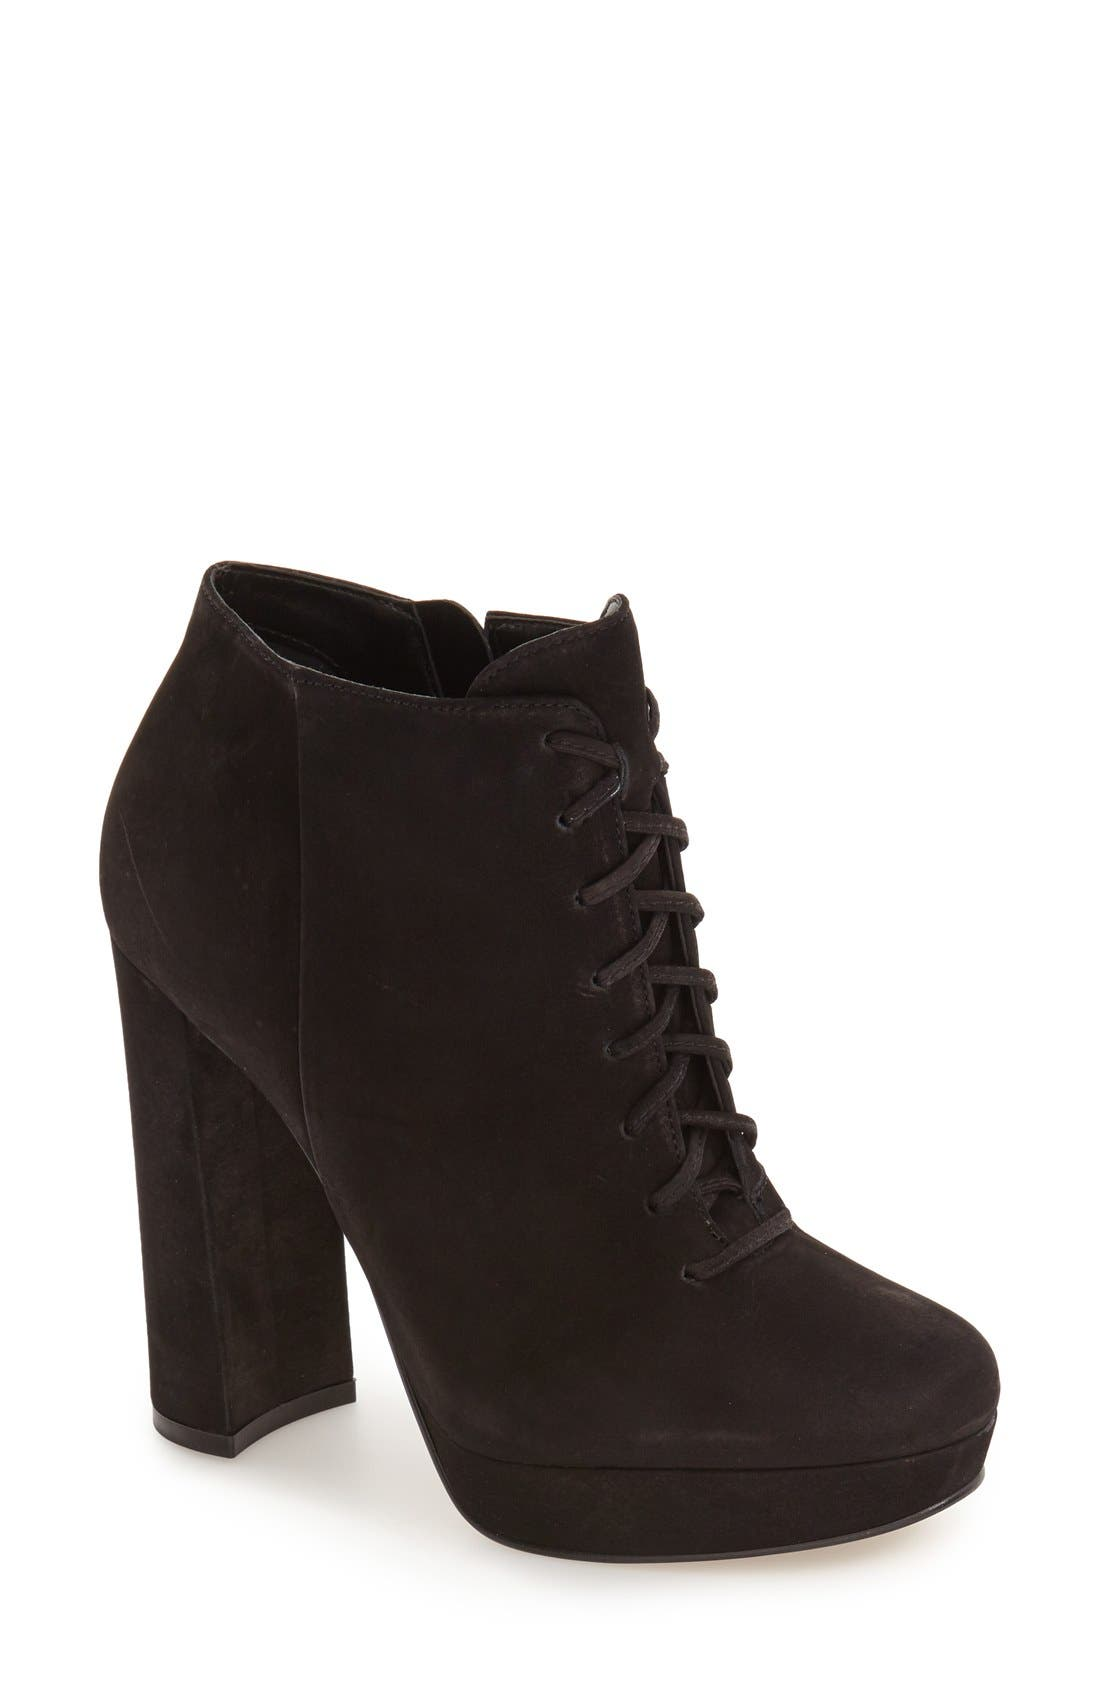 Alternate Image 1 Selected - Steve Madden 'Jolte' Lace-Up Bootie (Women)